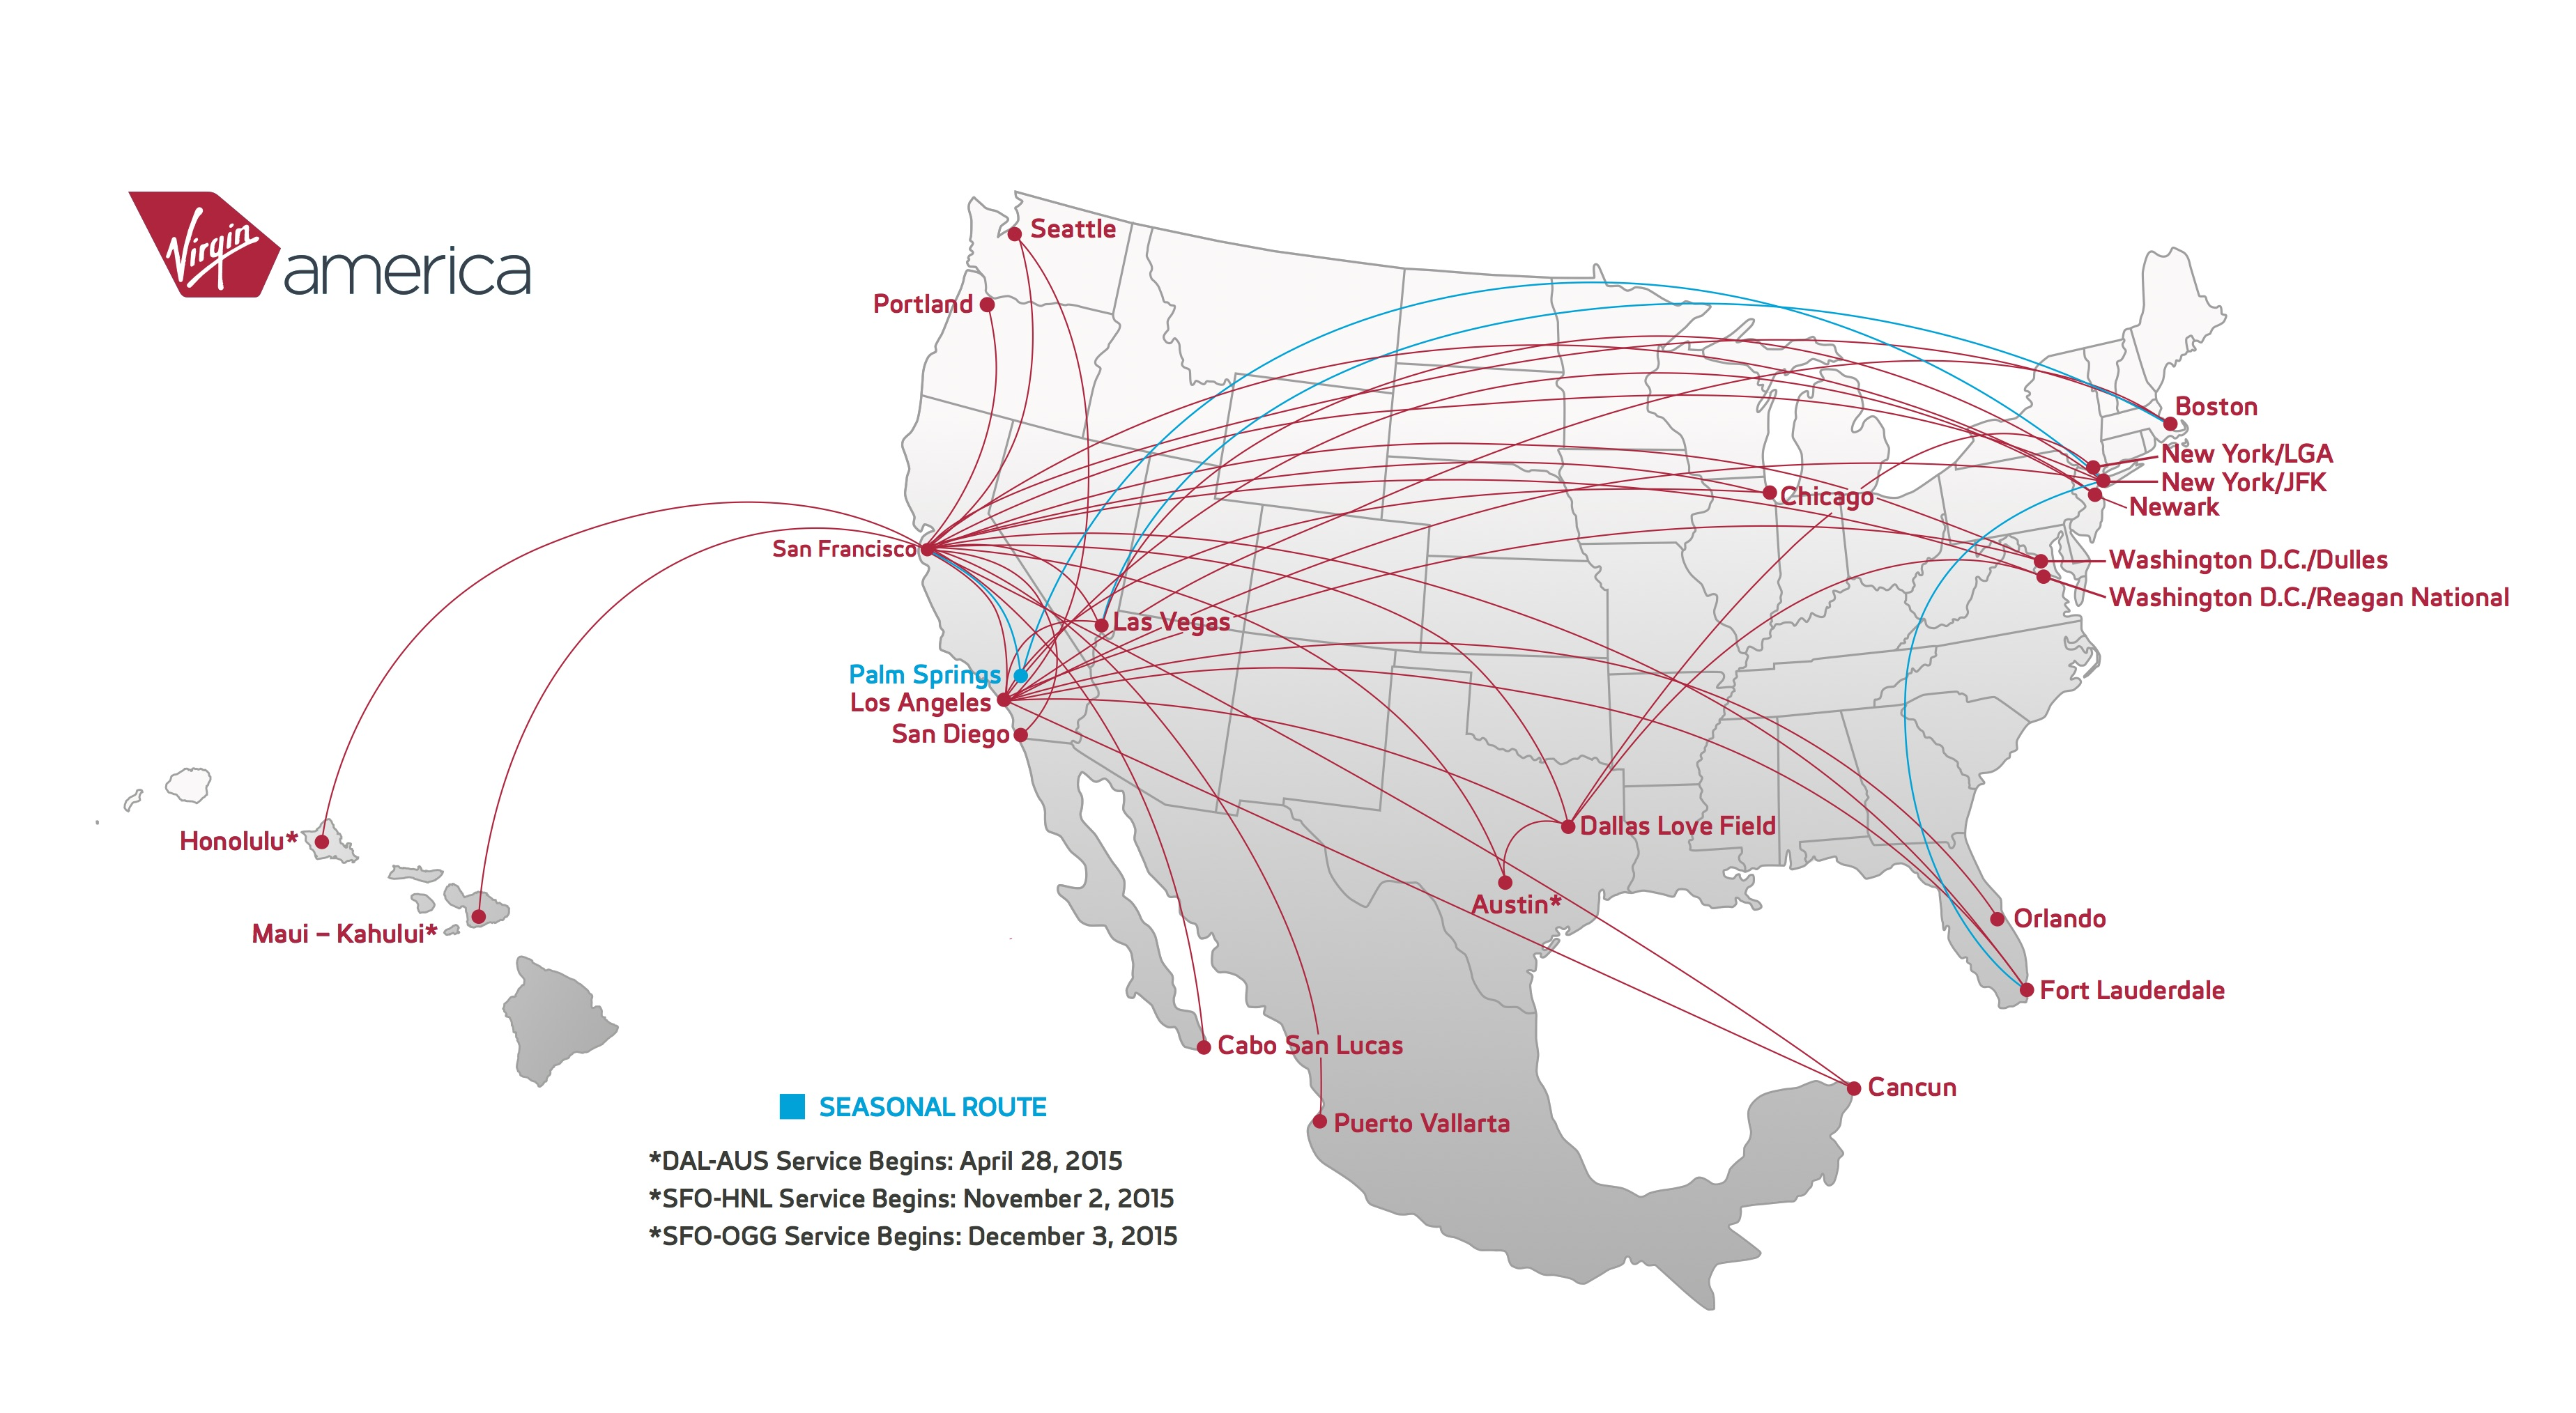 virgin america routes